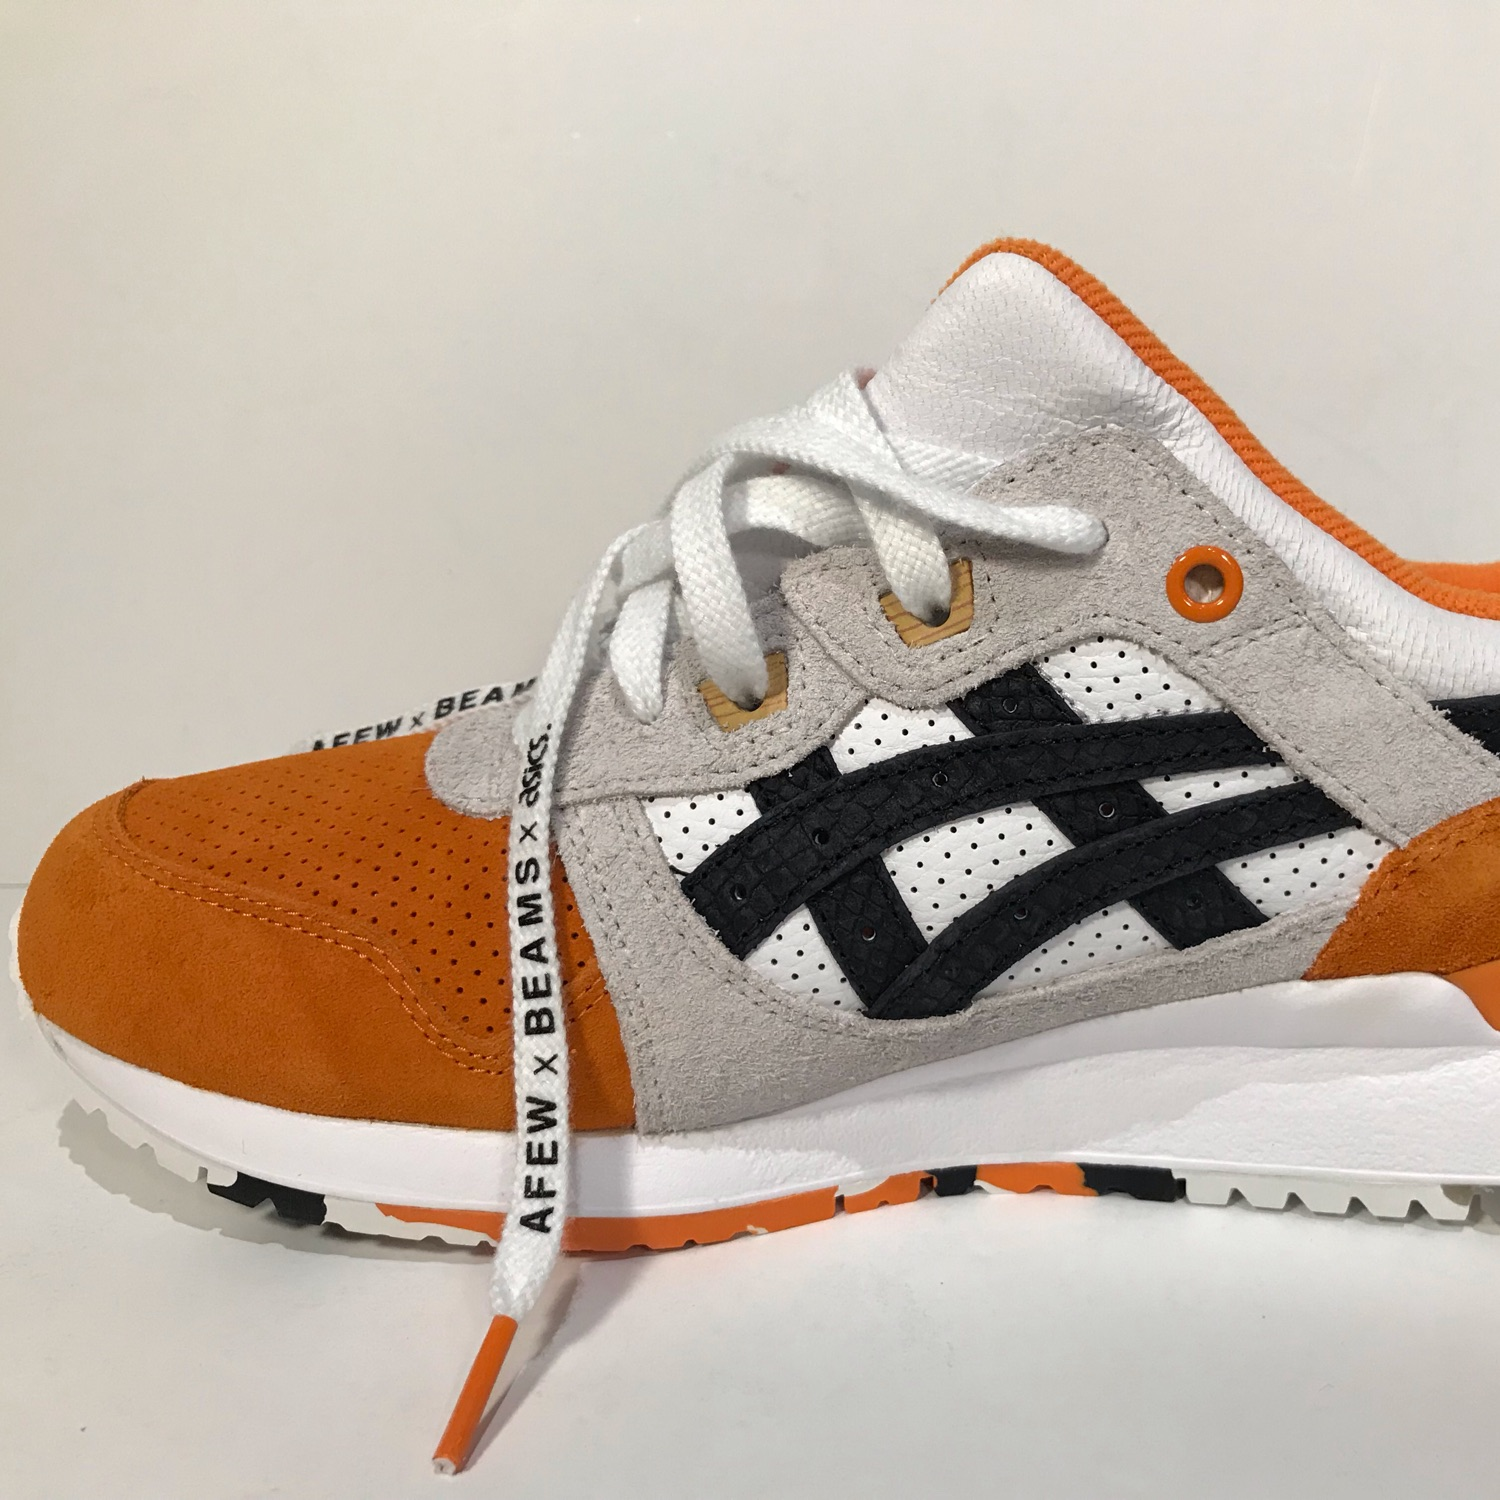 Gel Dswt Asics Lyte Beams 3 Orange Koi X Afew TiOPkXZu